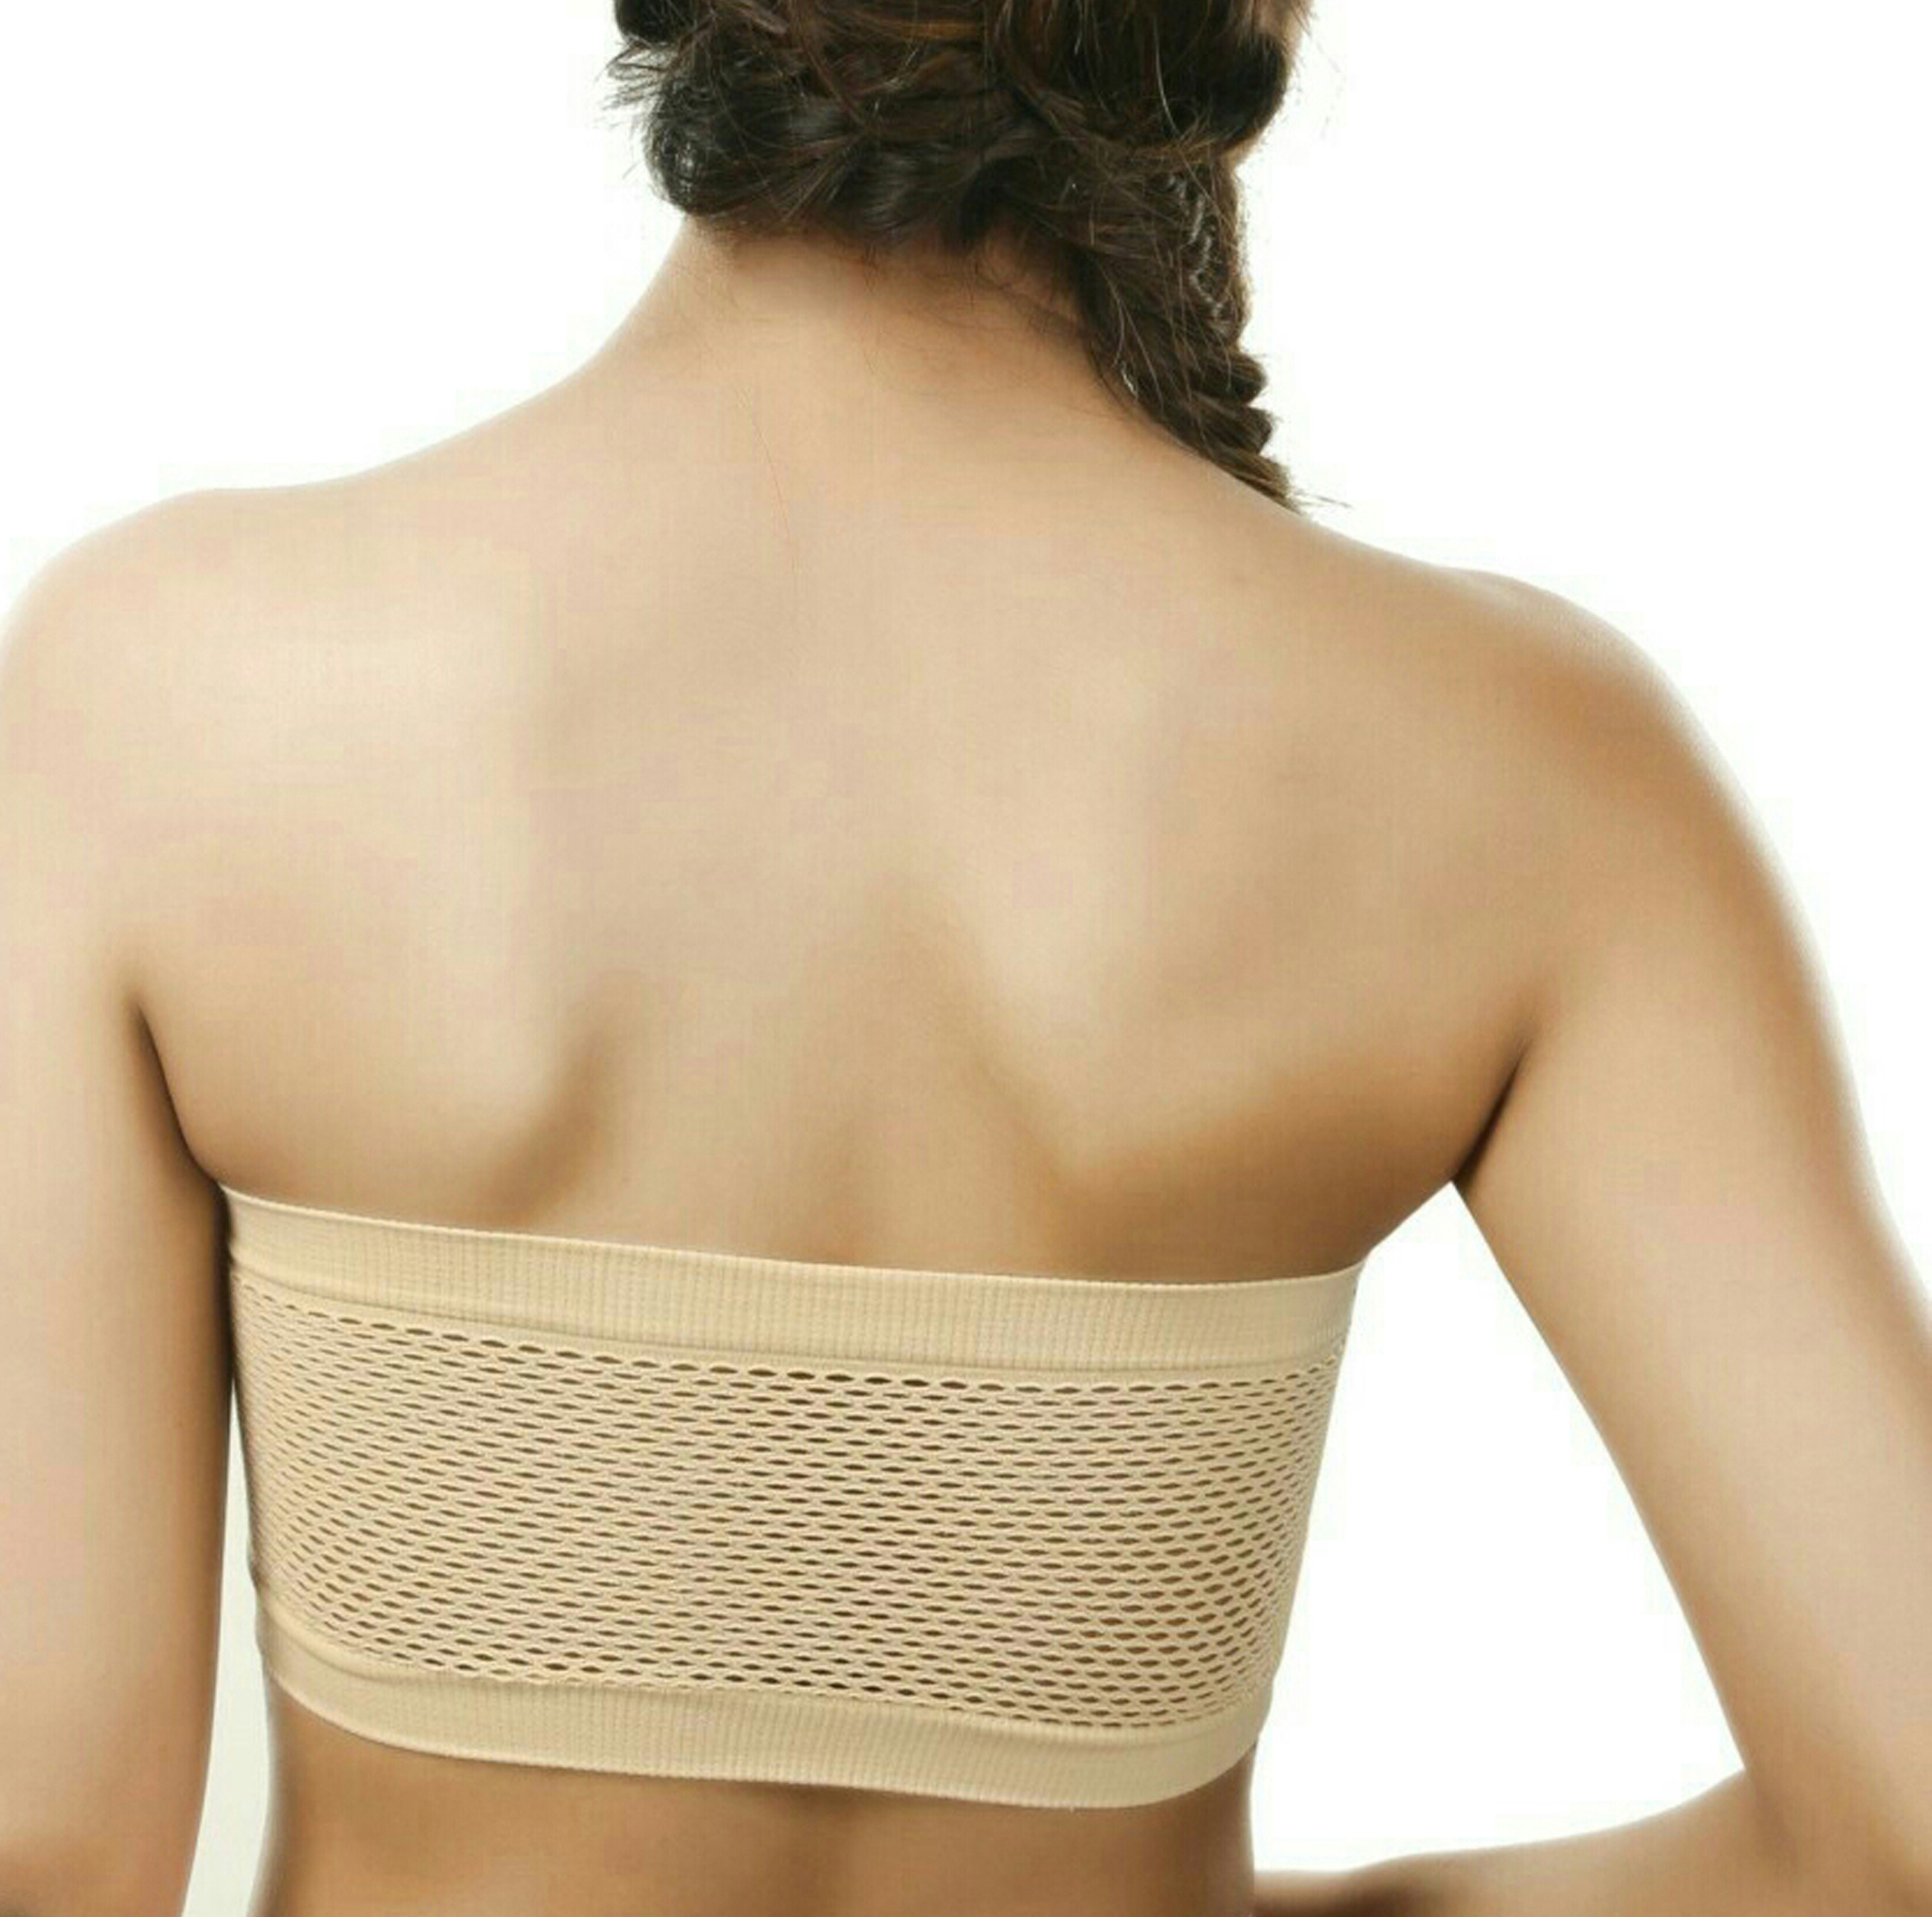 b27ac2589a0 Chileelife 1739 Wirefree Non-padded Strapless Bra Combo (Pack Of 2)